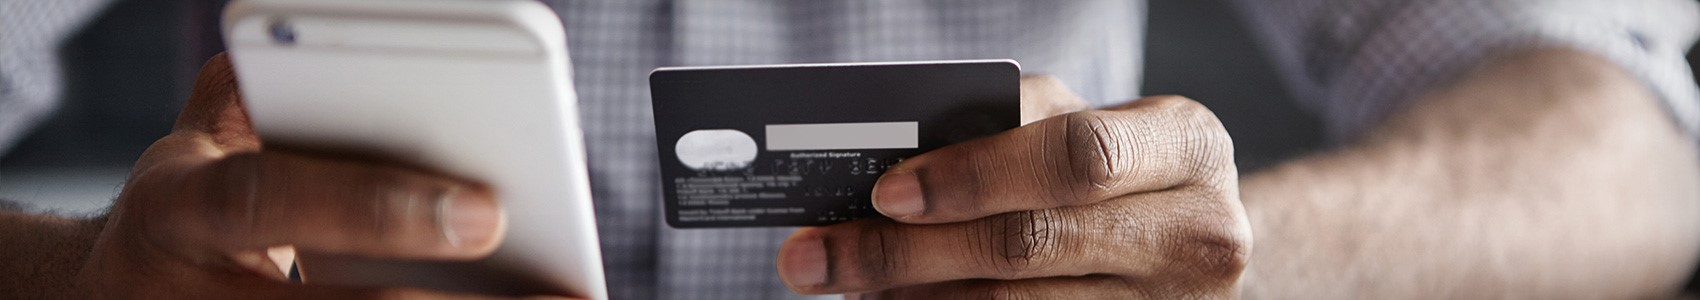 Man entering credit card information into mobile device